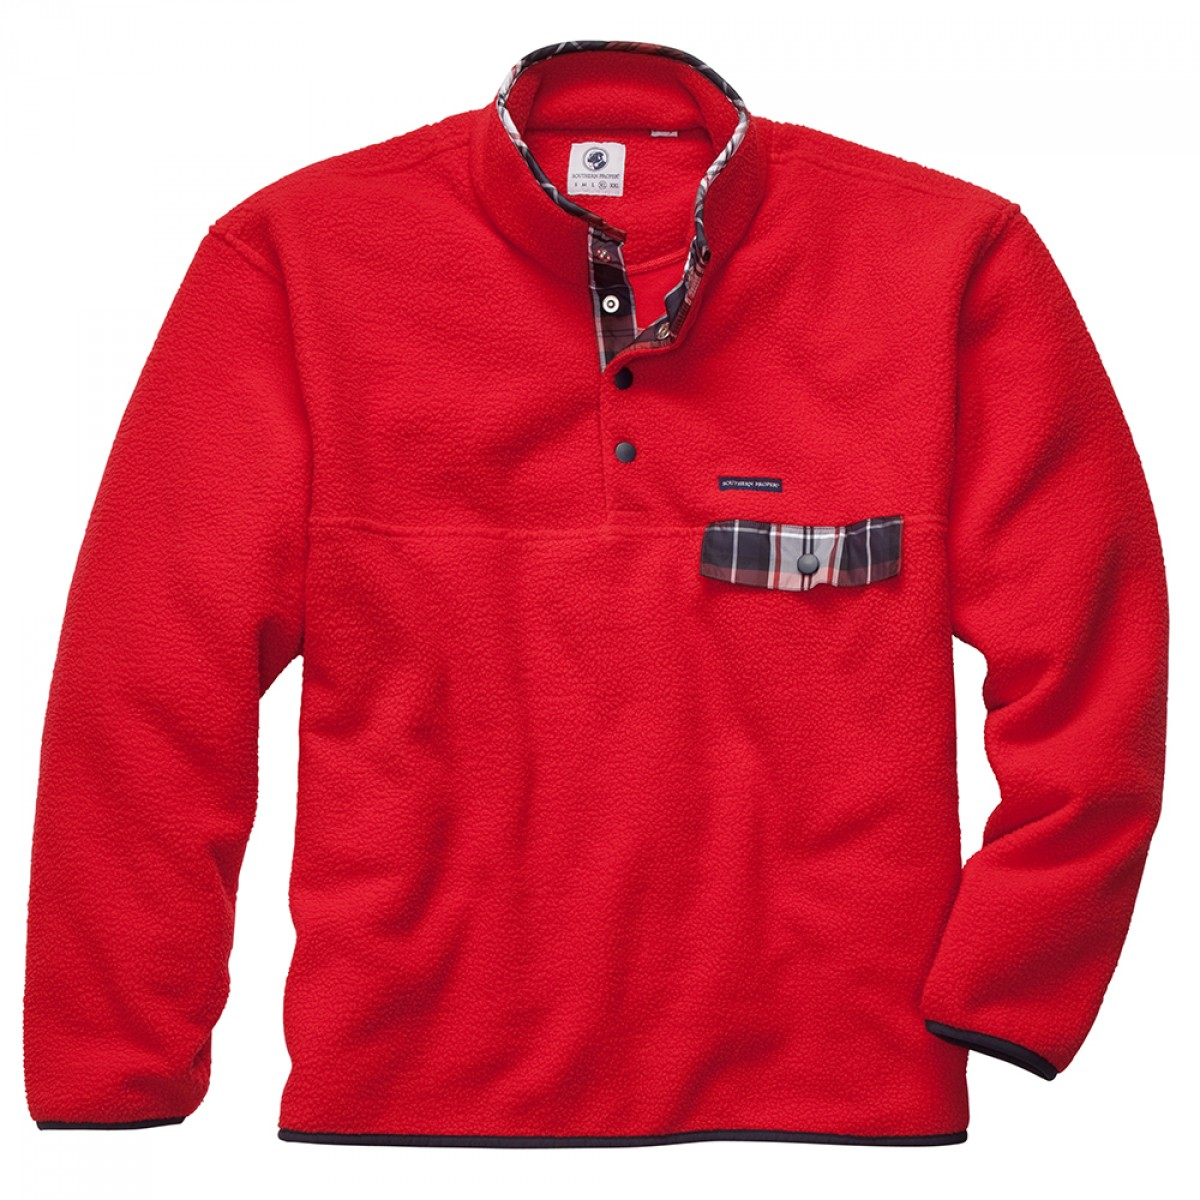 All Prep Pullover - Red